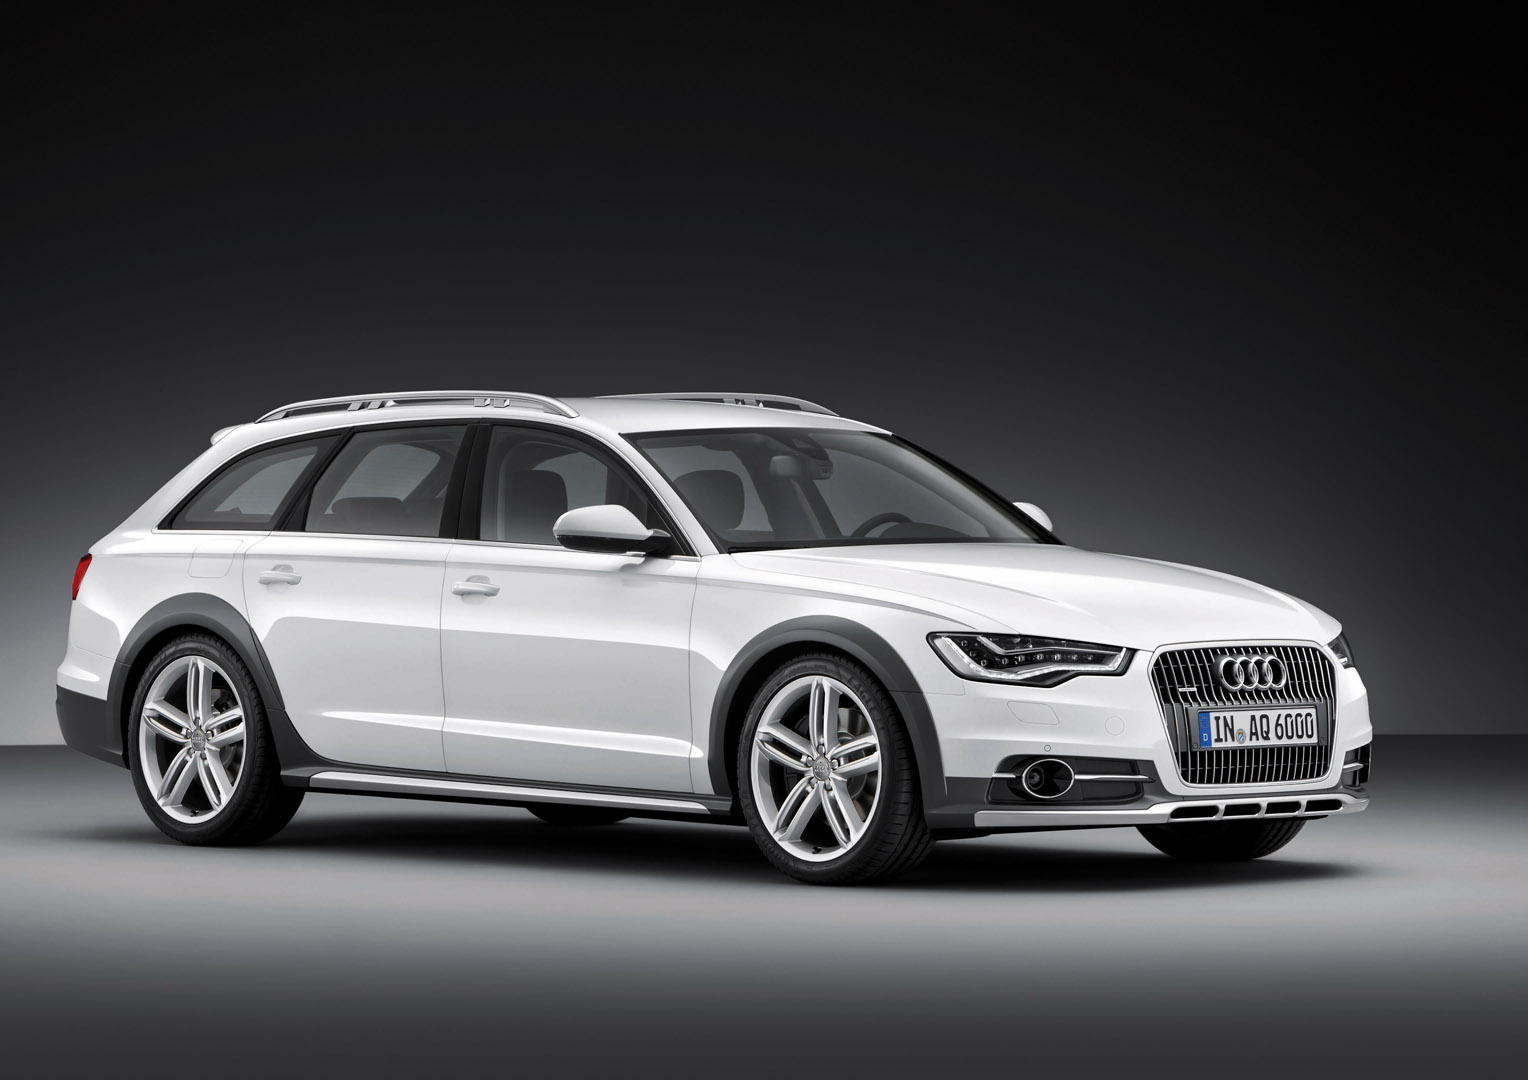 sport cars audi a6 allroad quattro 3 0 tdi hd wallpapers 2012. Black Bedroom Furniture Sets. Home Design Ideas